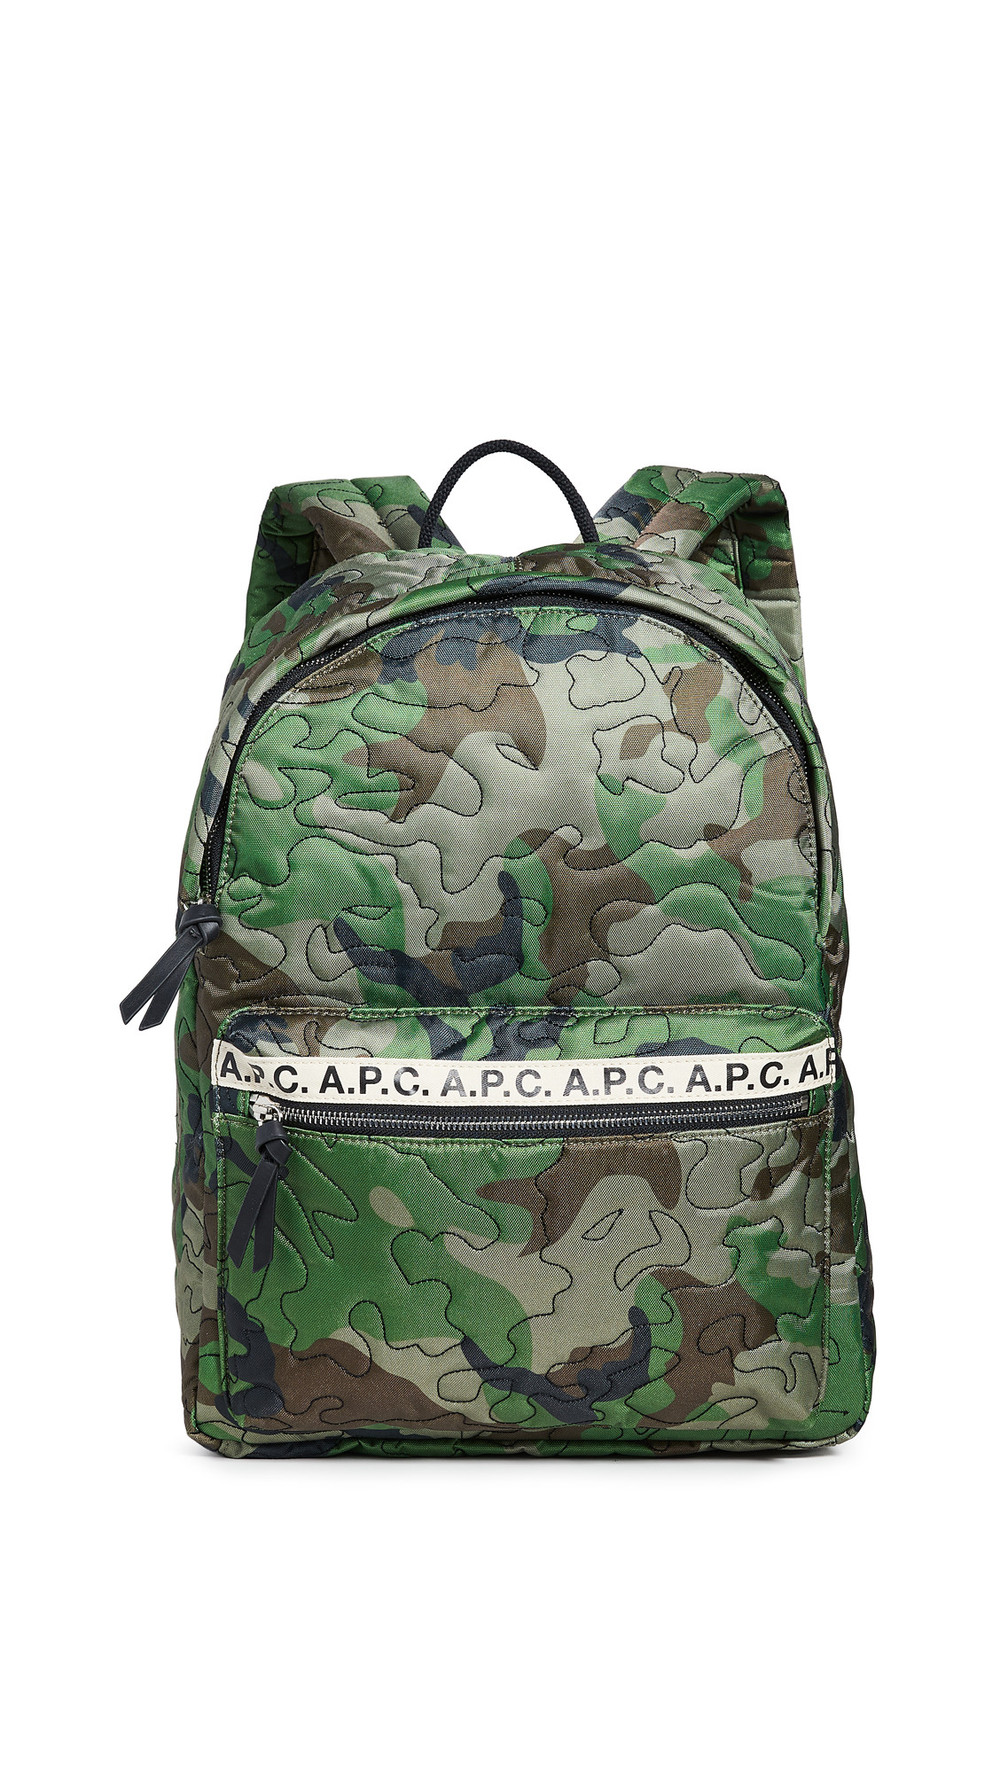 A.P.C. A.P.C. Dos Marc Backpack